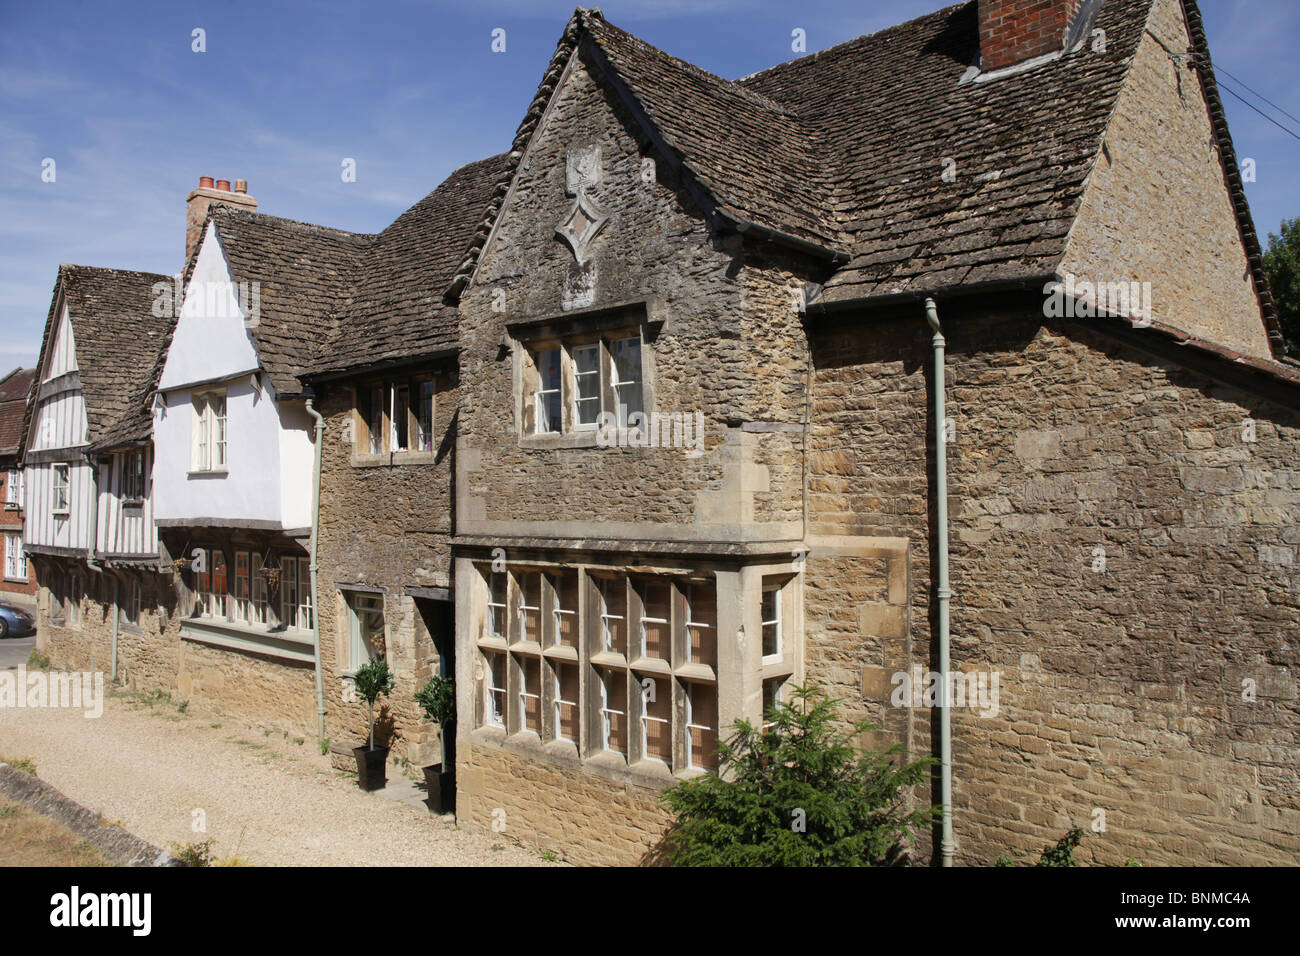 Three beautiful original medieval houses in Lacock village ,Wiltshire in England. - Stock Image